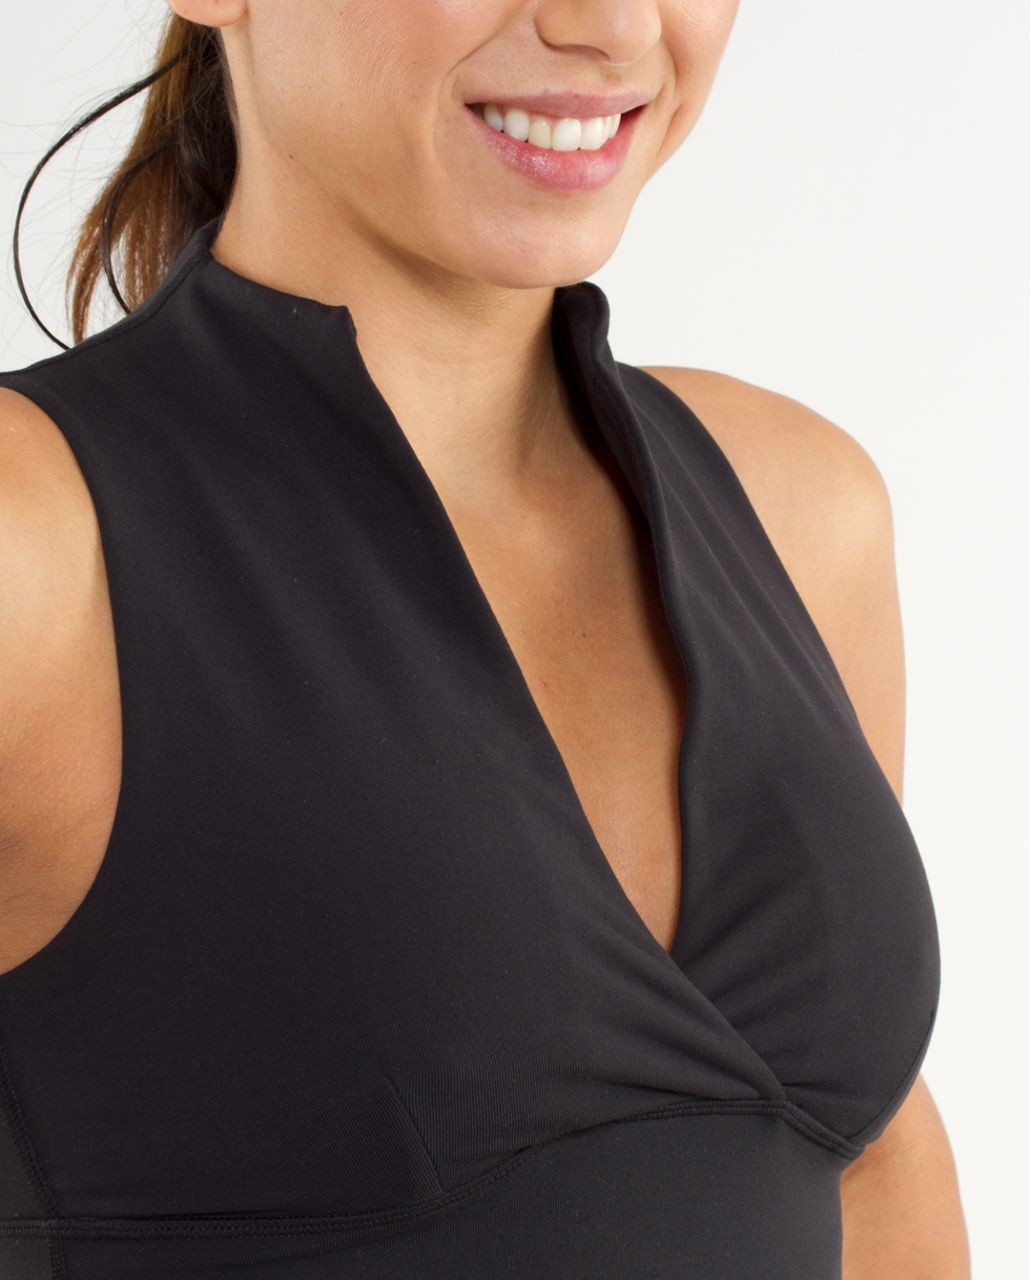 Lululemon Whisper Tank - Black